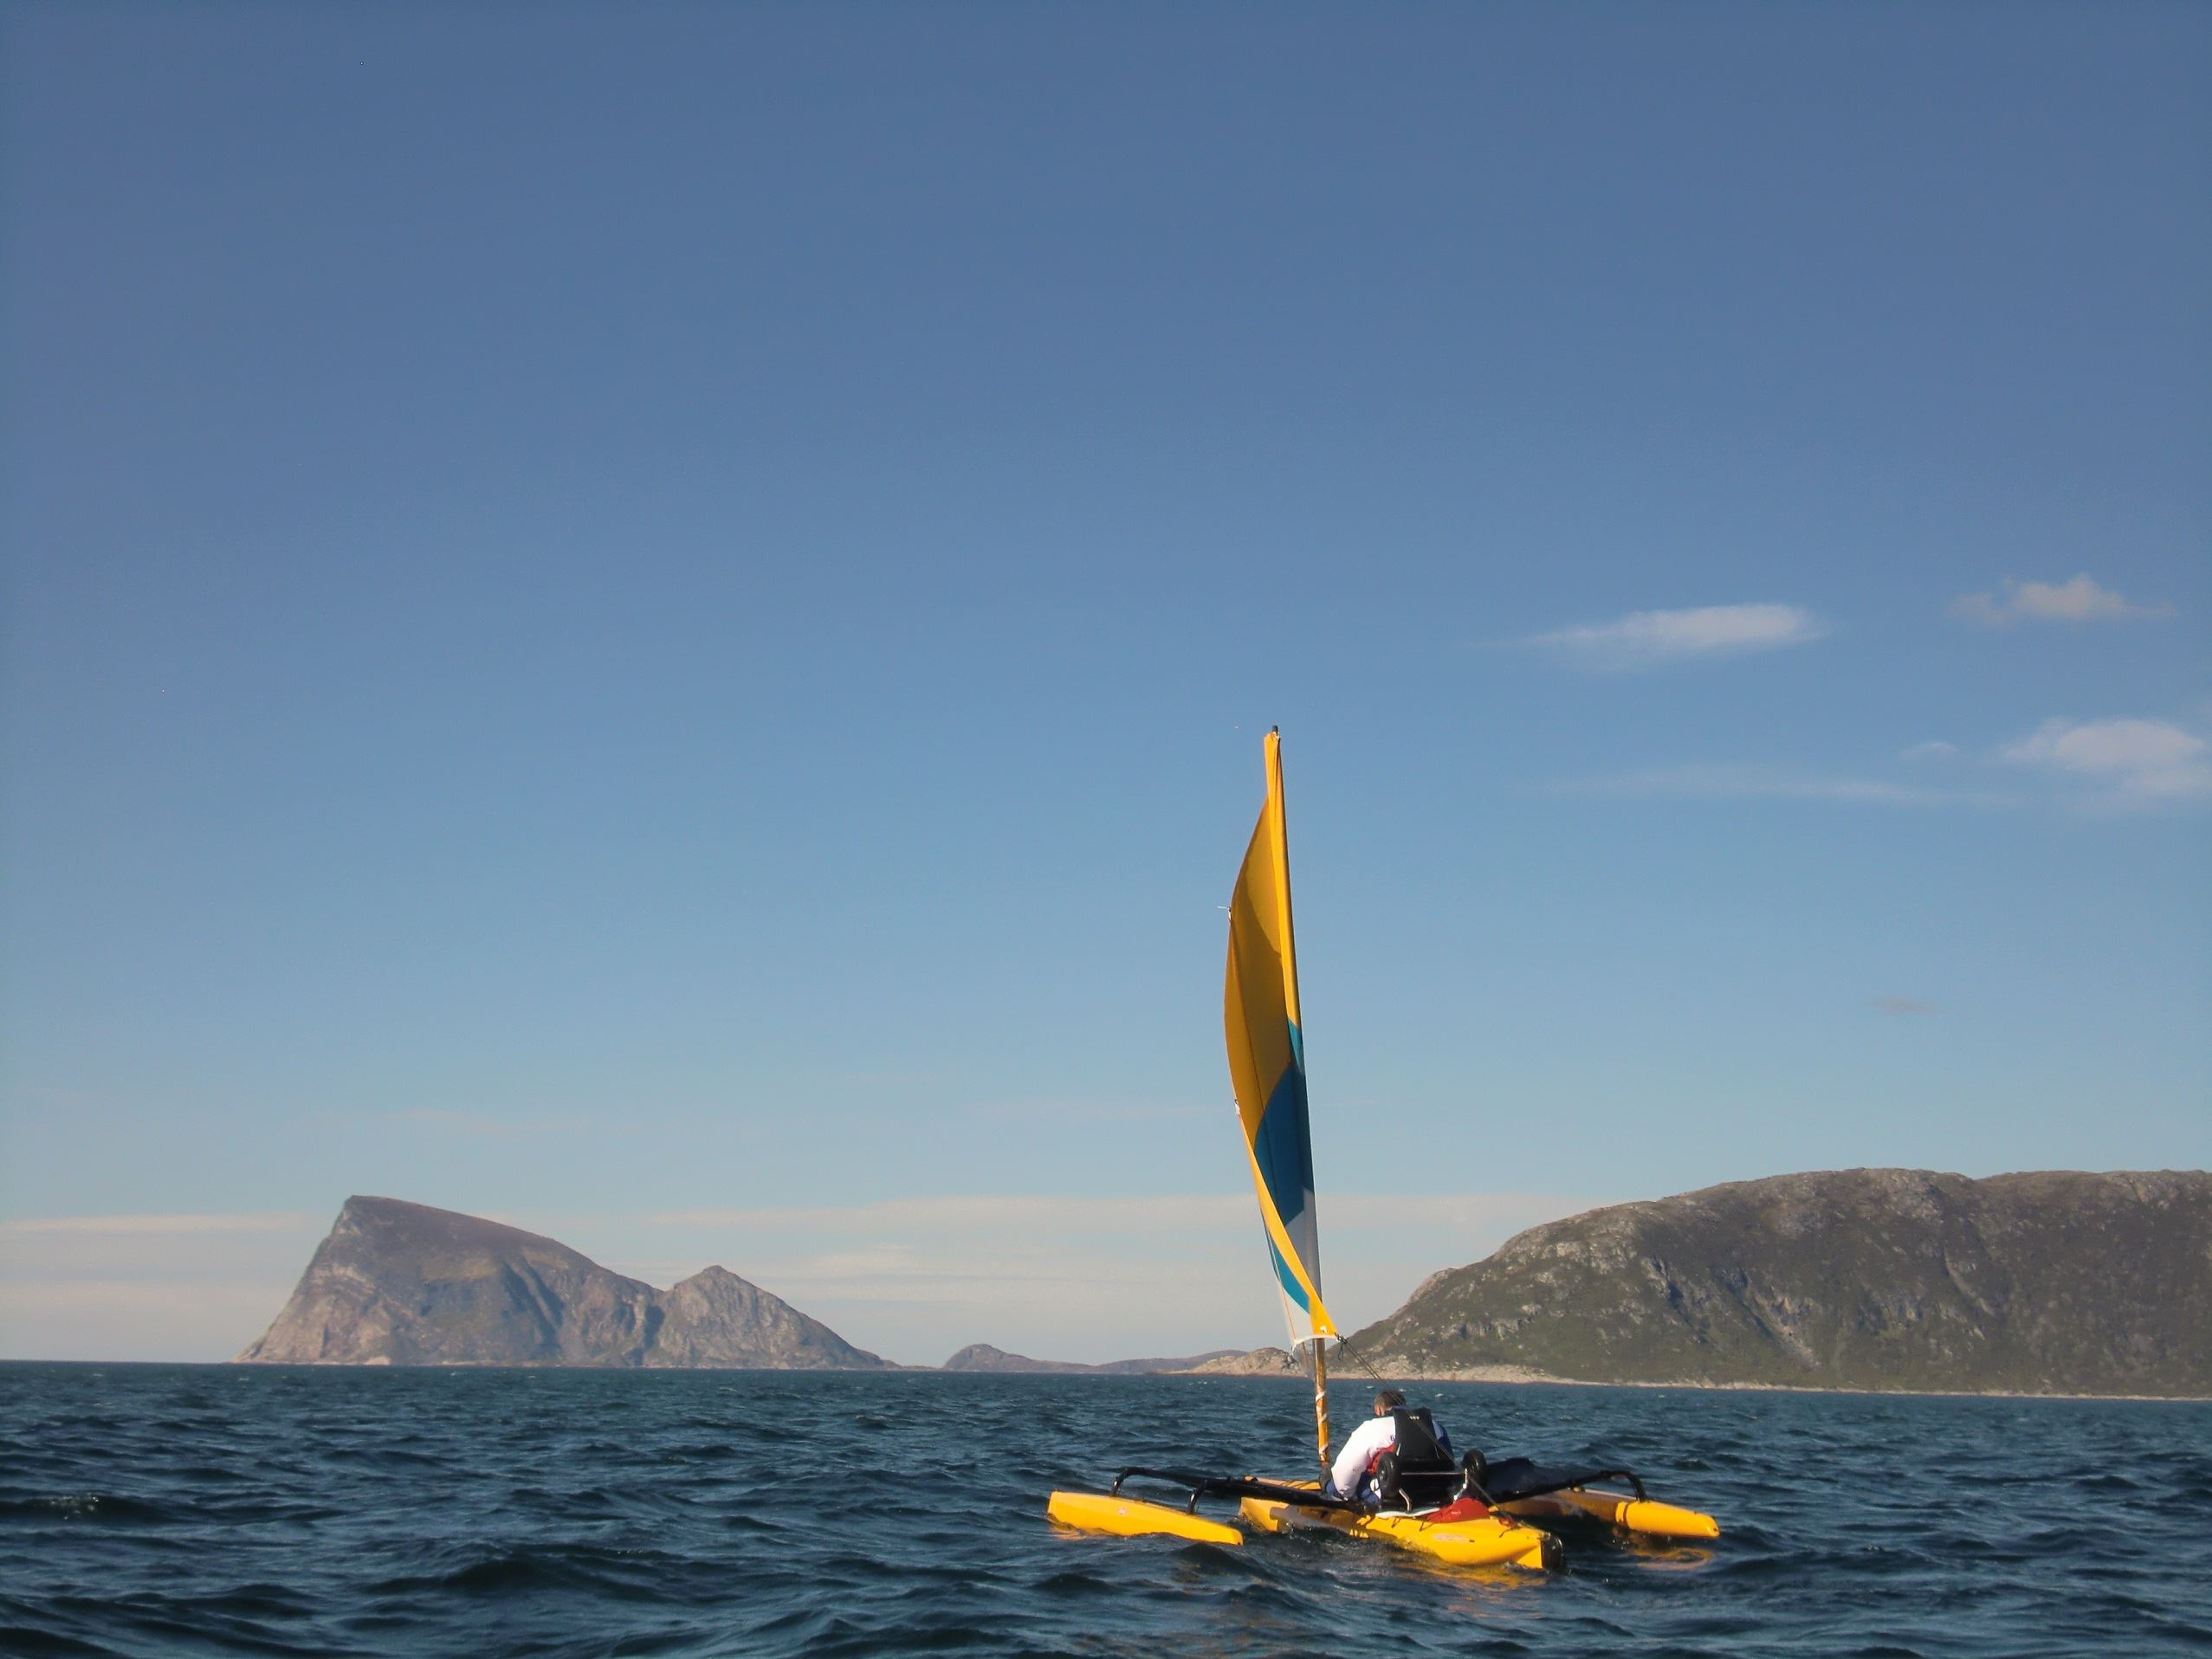 Jonathan Montreuil,  © 69 Nord Outdoor Center, Week-end and short stay trip by sailing kayak off the beaten path – 69 Nord Sommarøy Outdoor Center